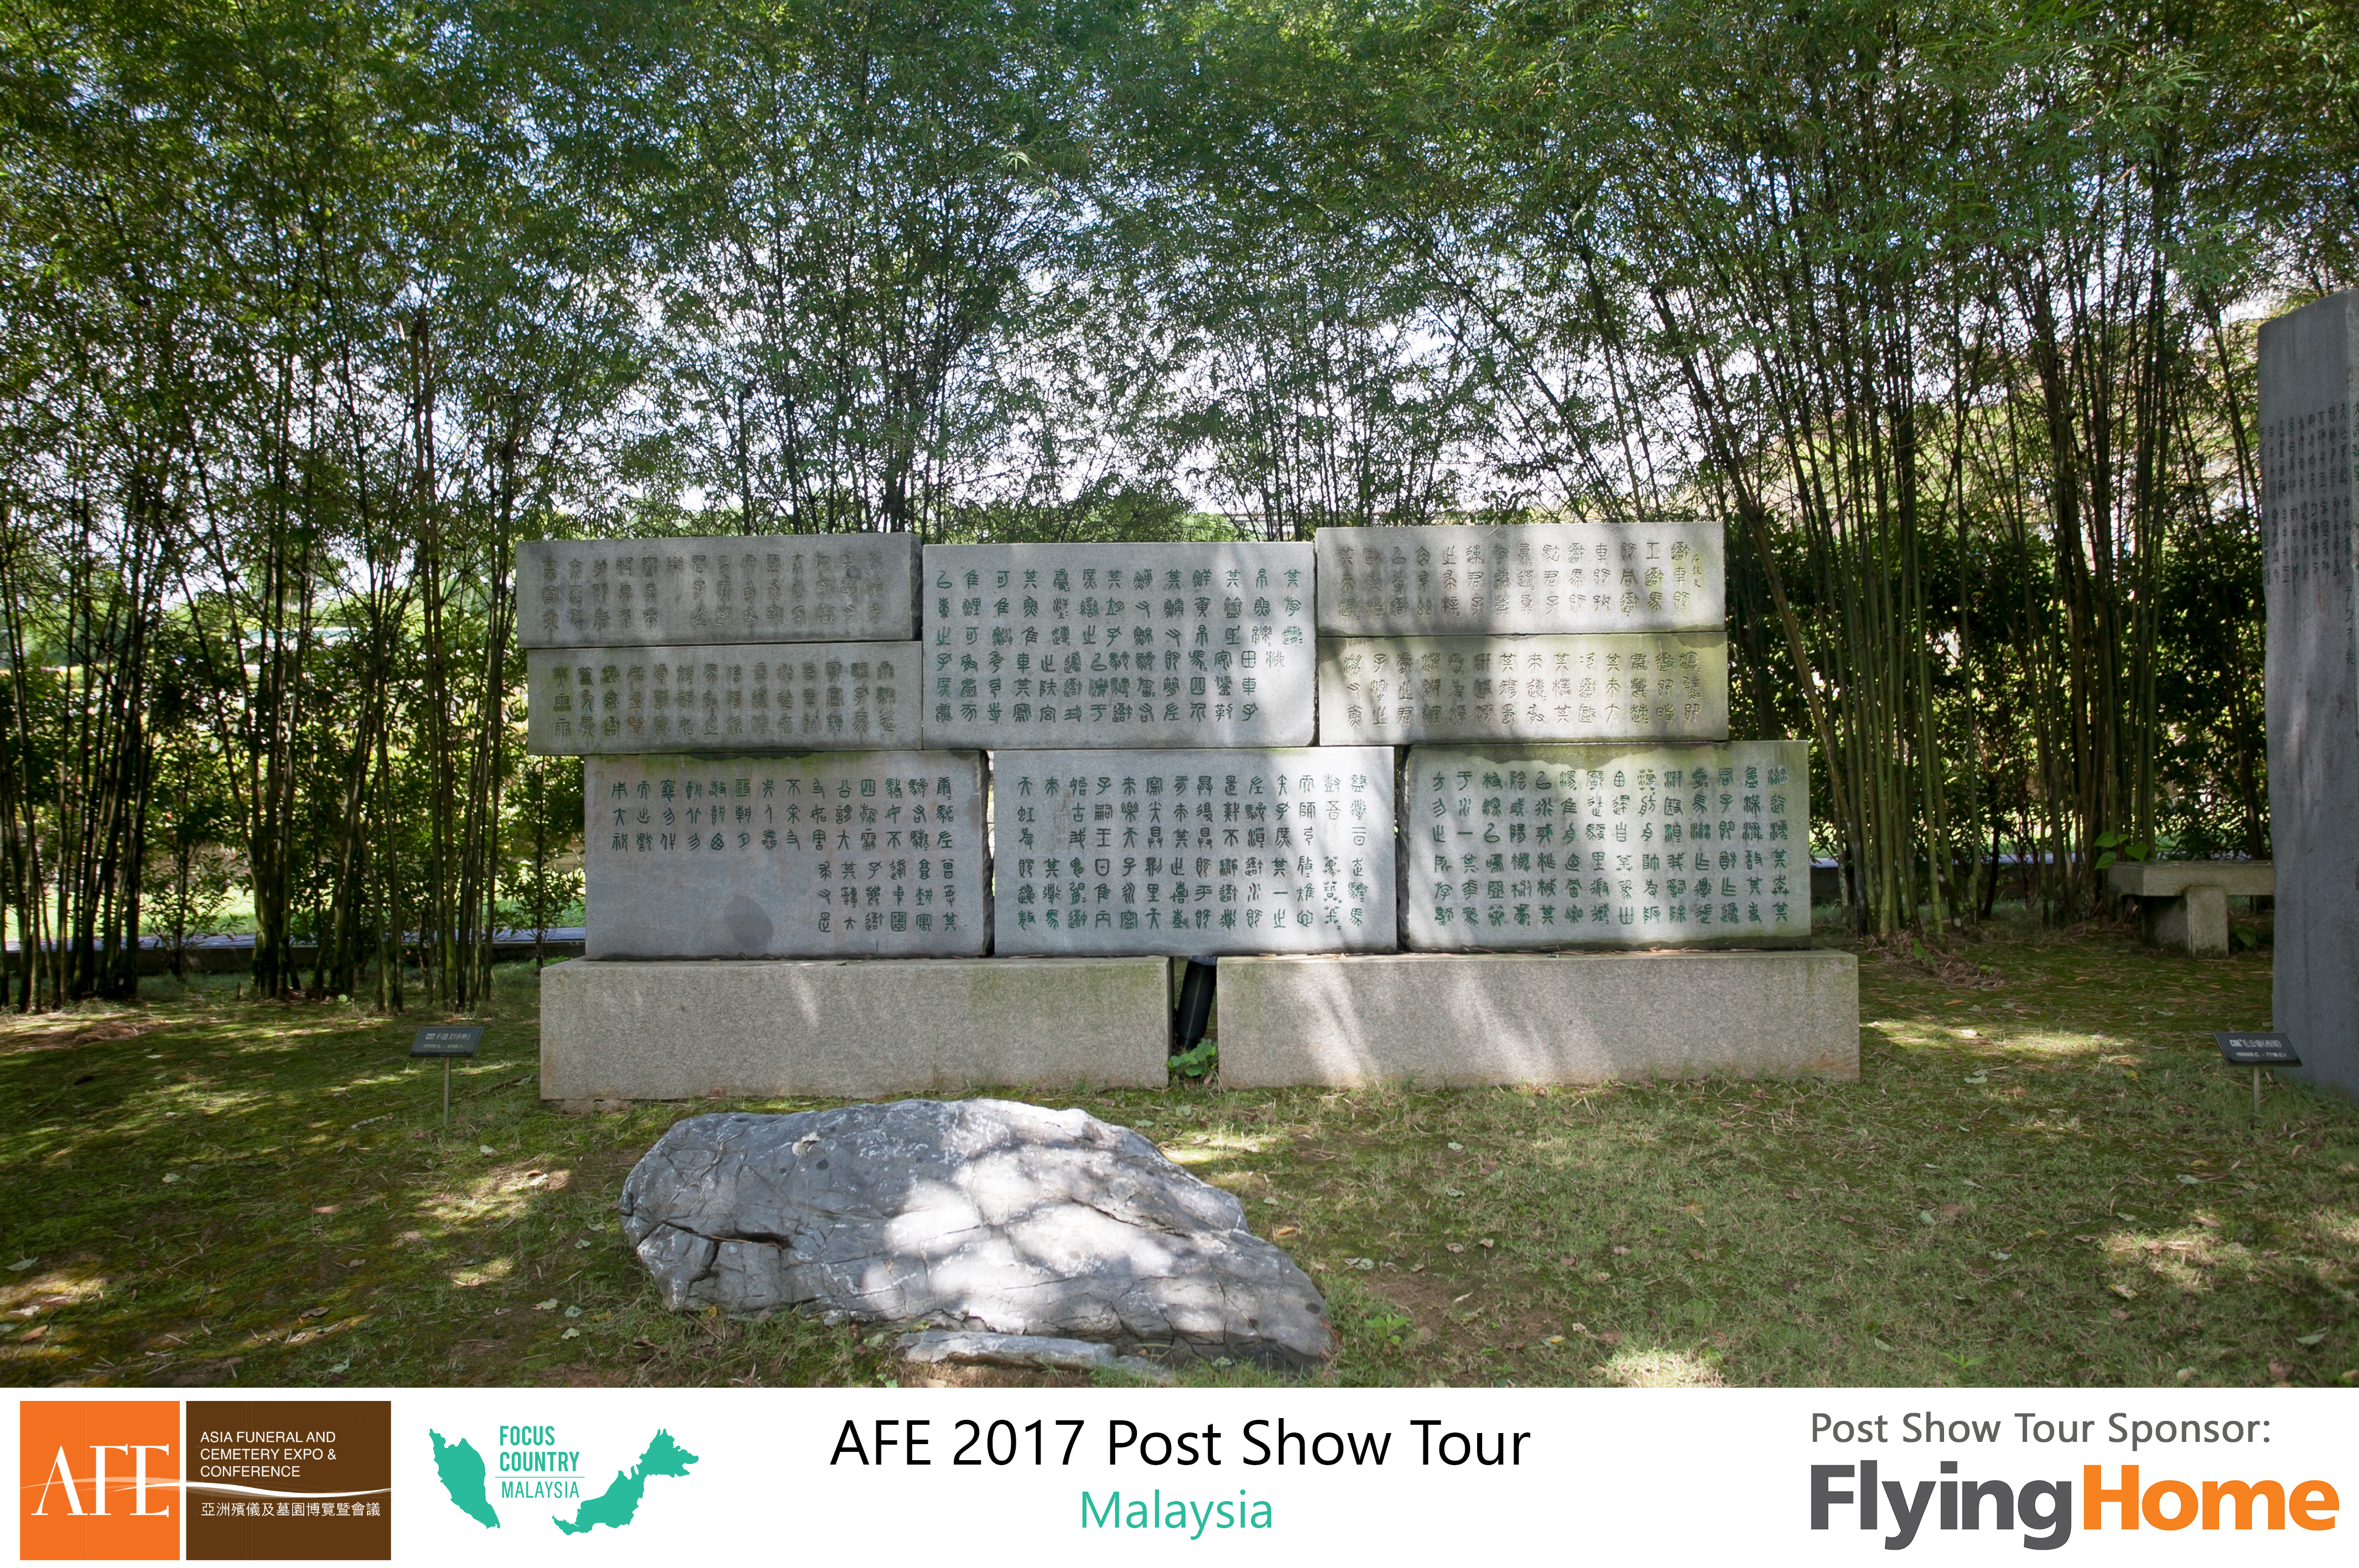 AFE Post Show Tour 2017 Day 2 - 50